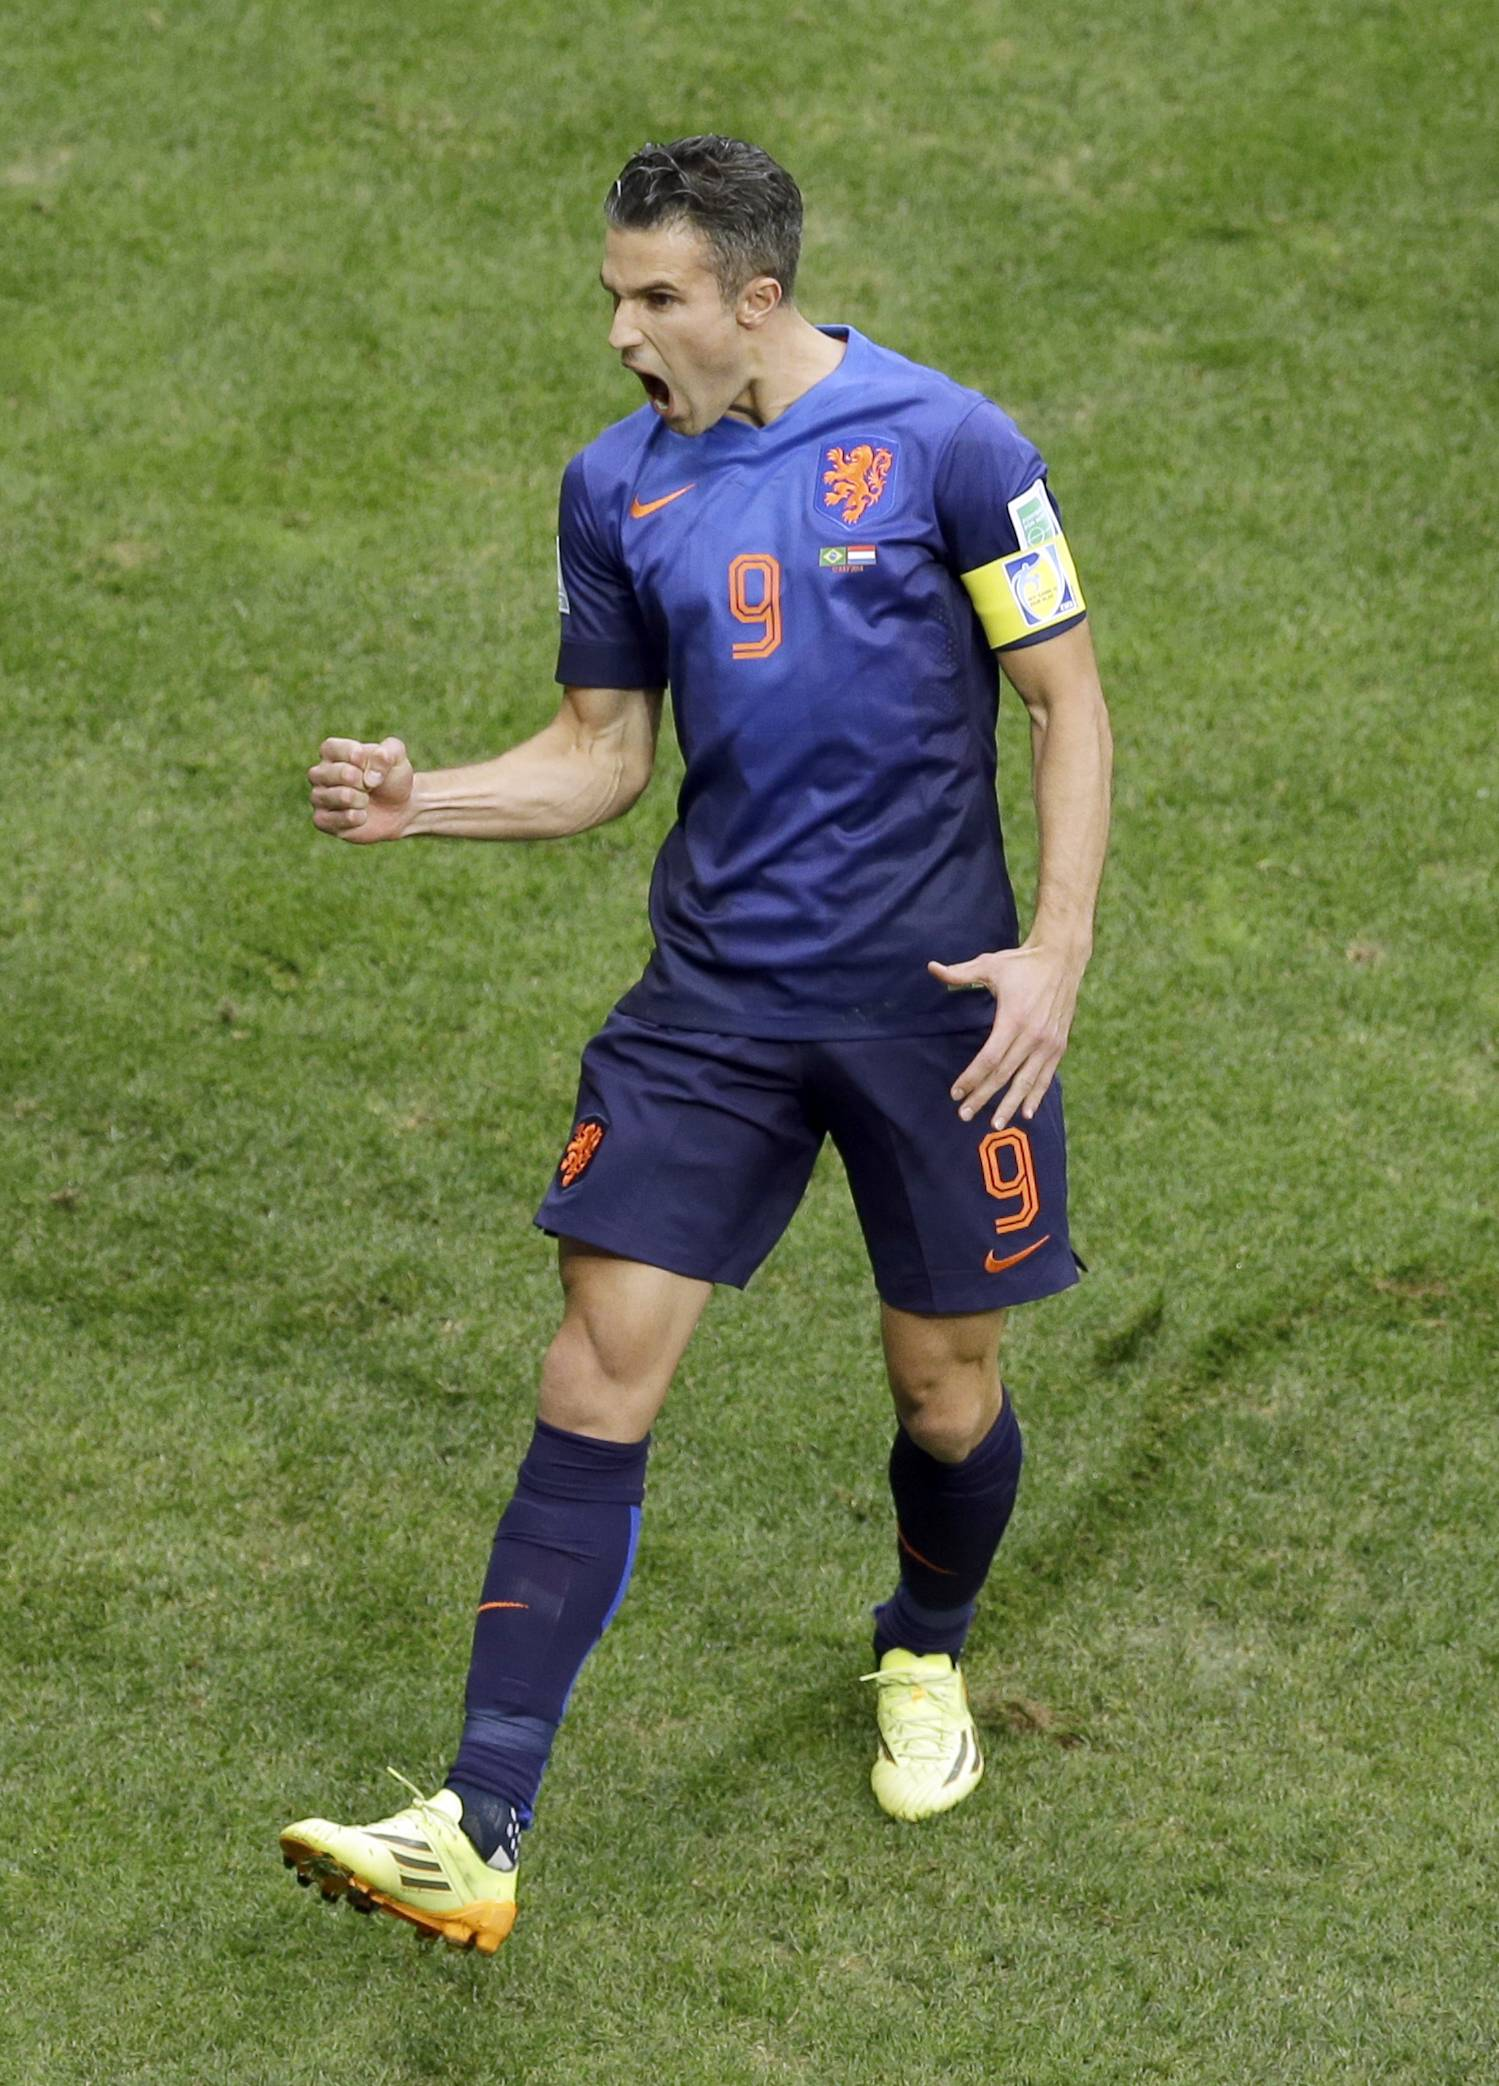 The Netherlands' Robin van Persie celebrates after scoring during Saturday's third-place World Cup match against Brazil at the Estadio Nacional in Brasilia, Brazil.